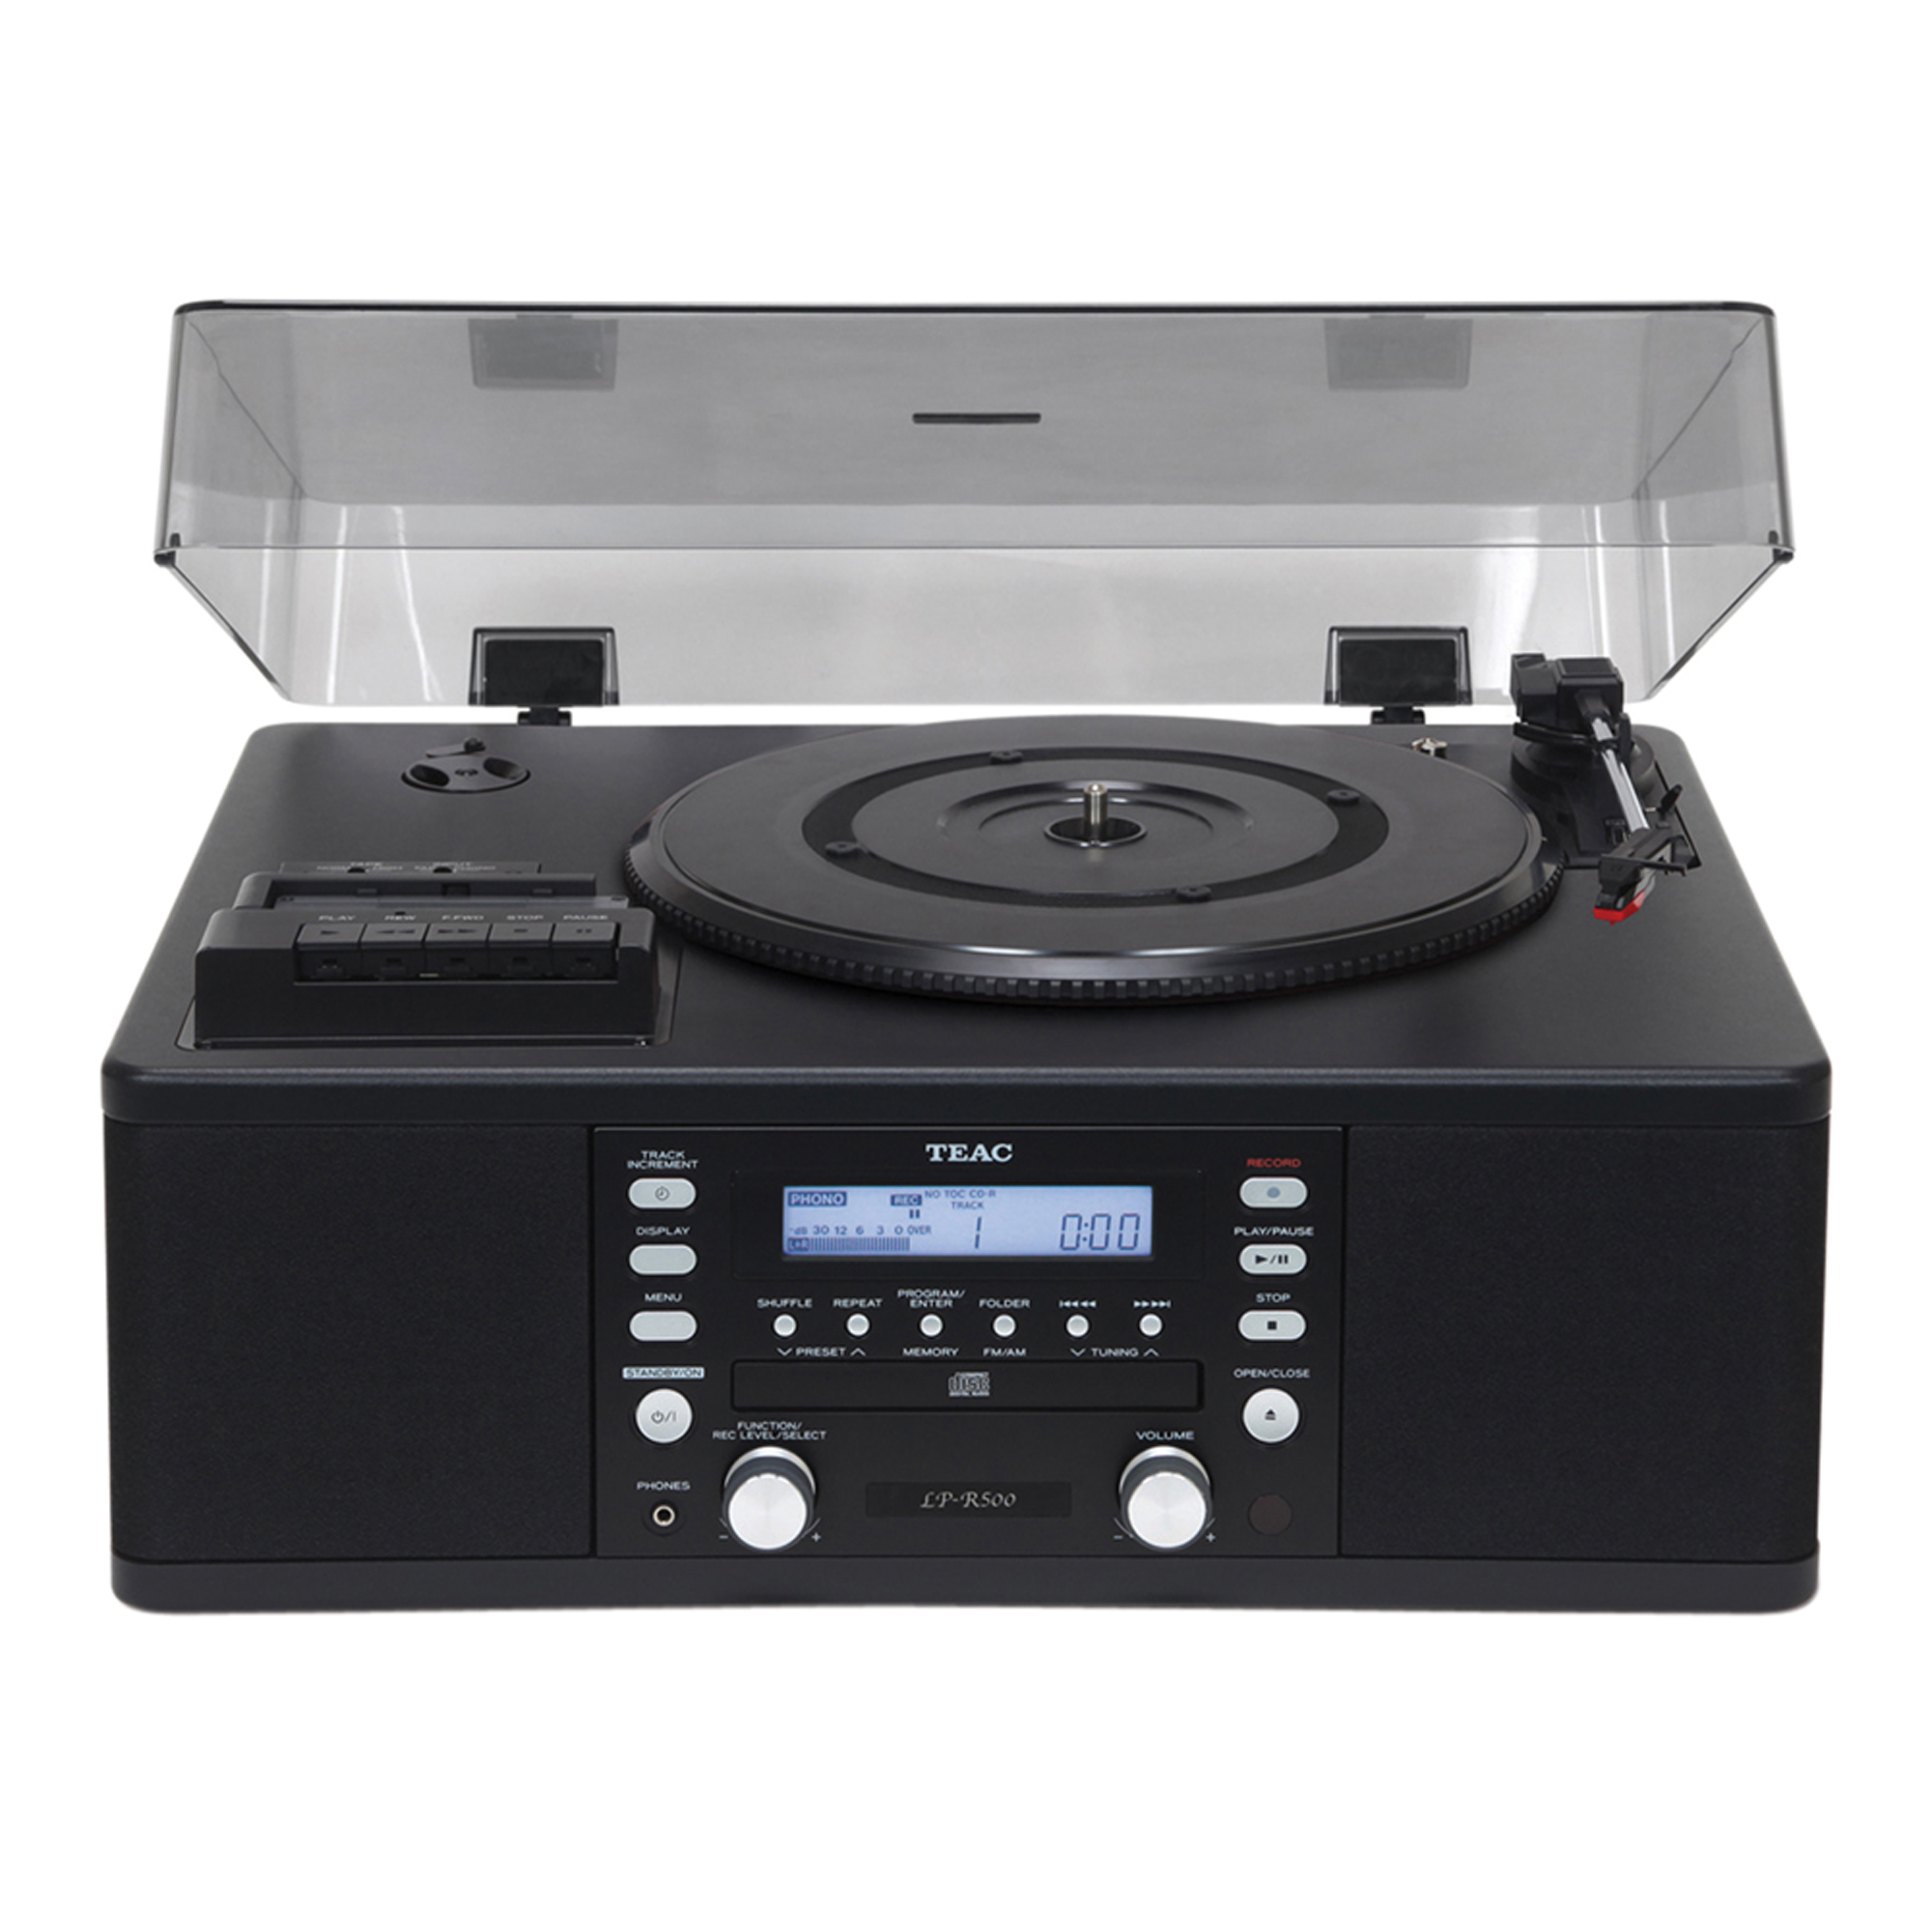 Teac Te065a Lpr500 Turntable With Cd Burner Cassette